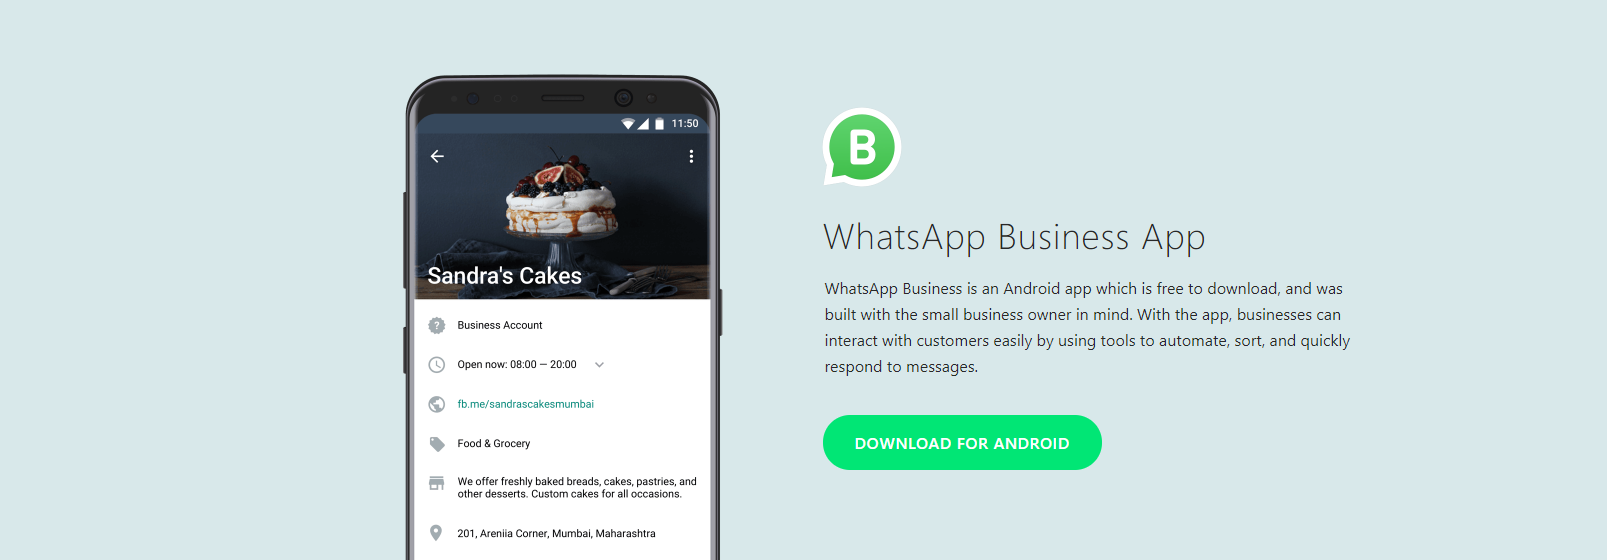 WhatsApp for Business Launch: 1 3 bil users can chat with businesses!